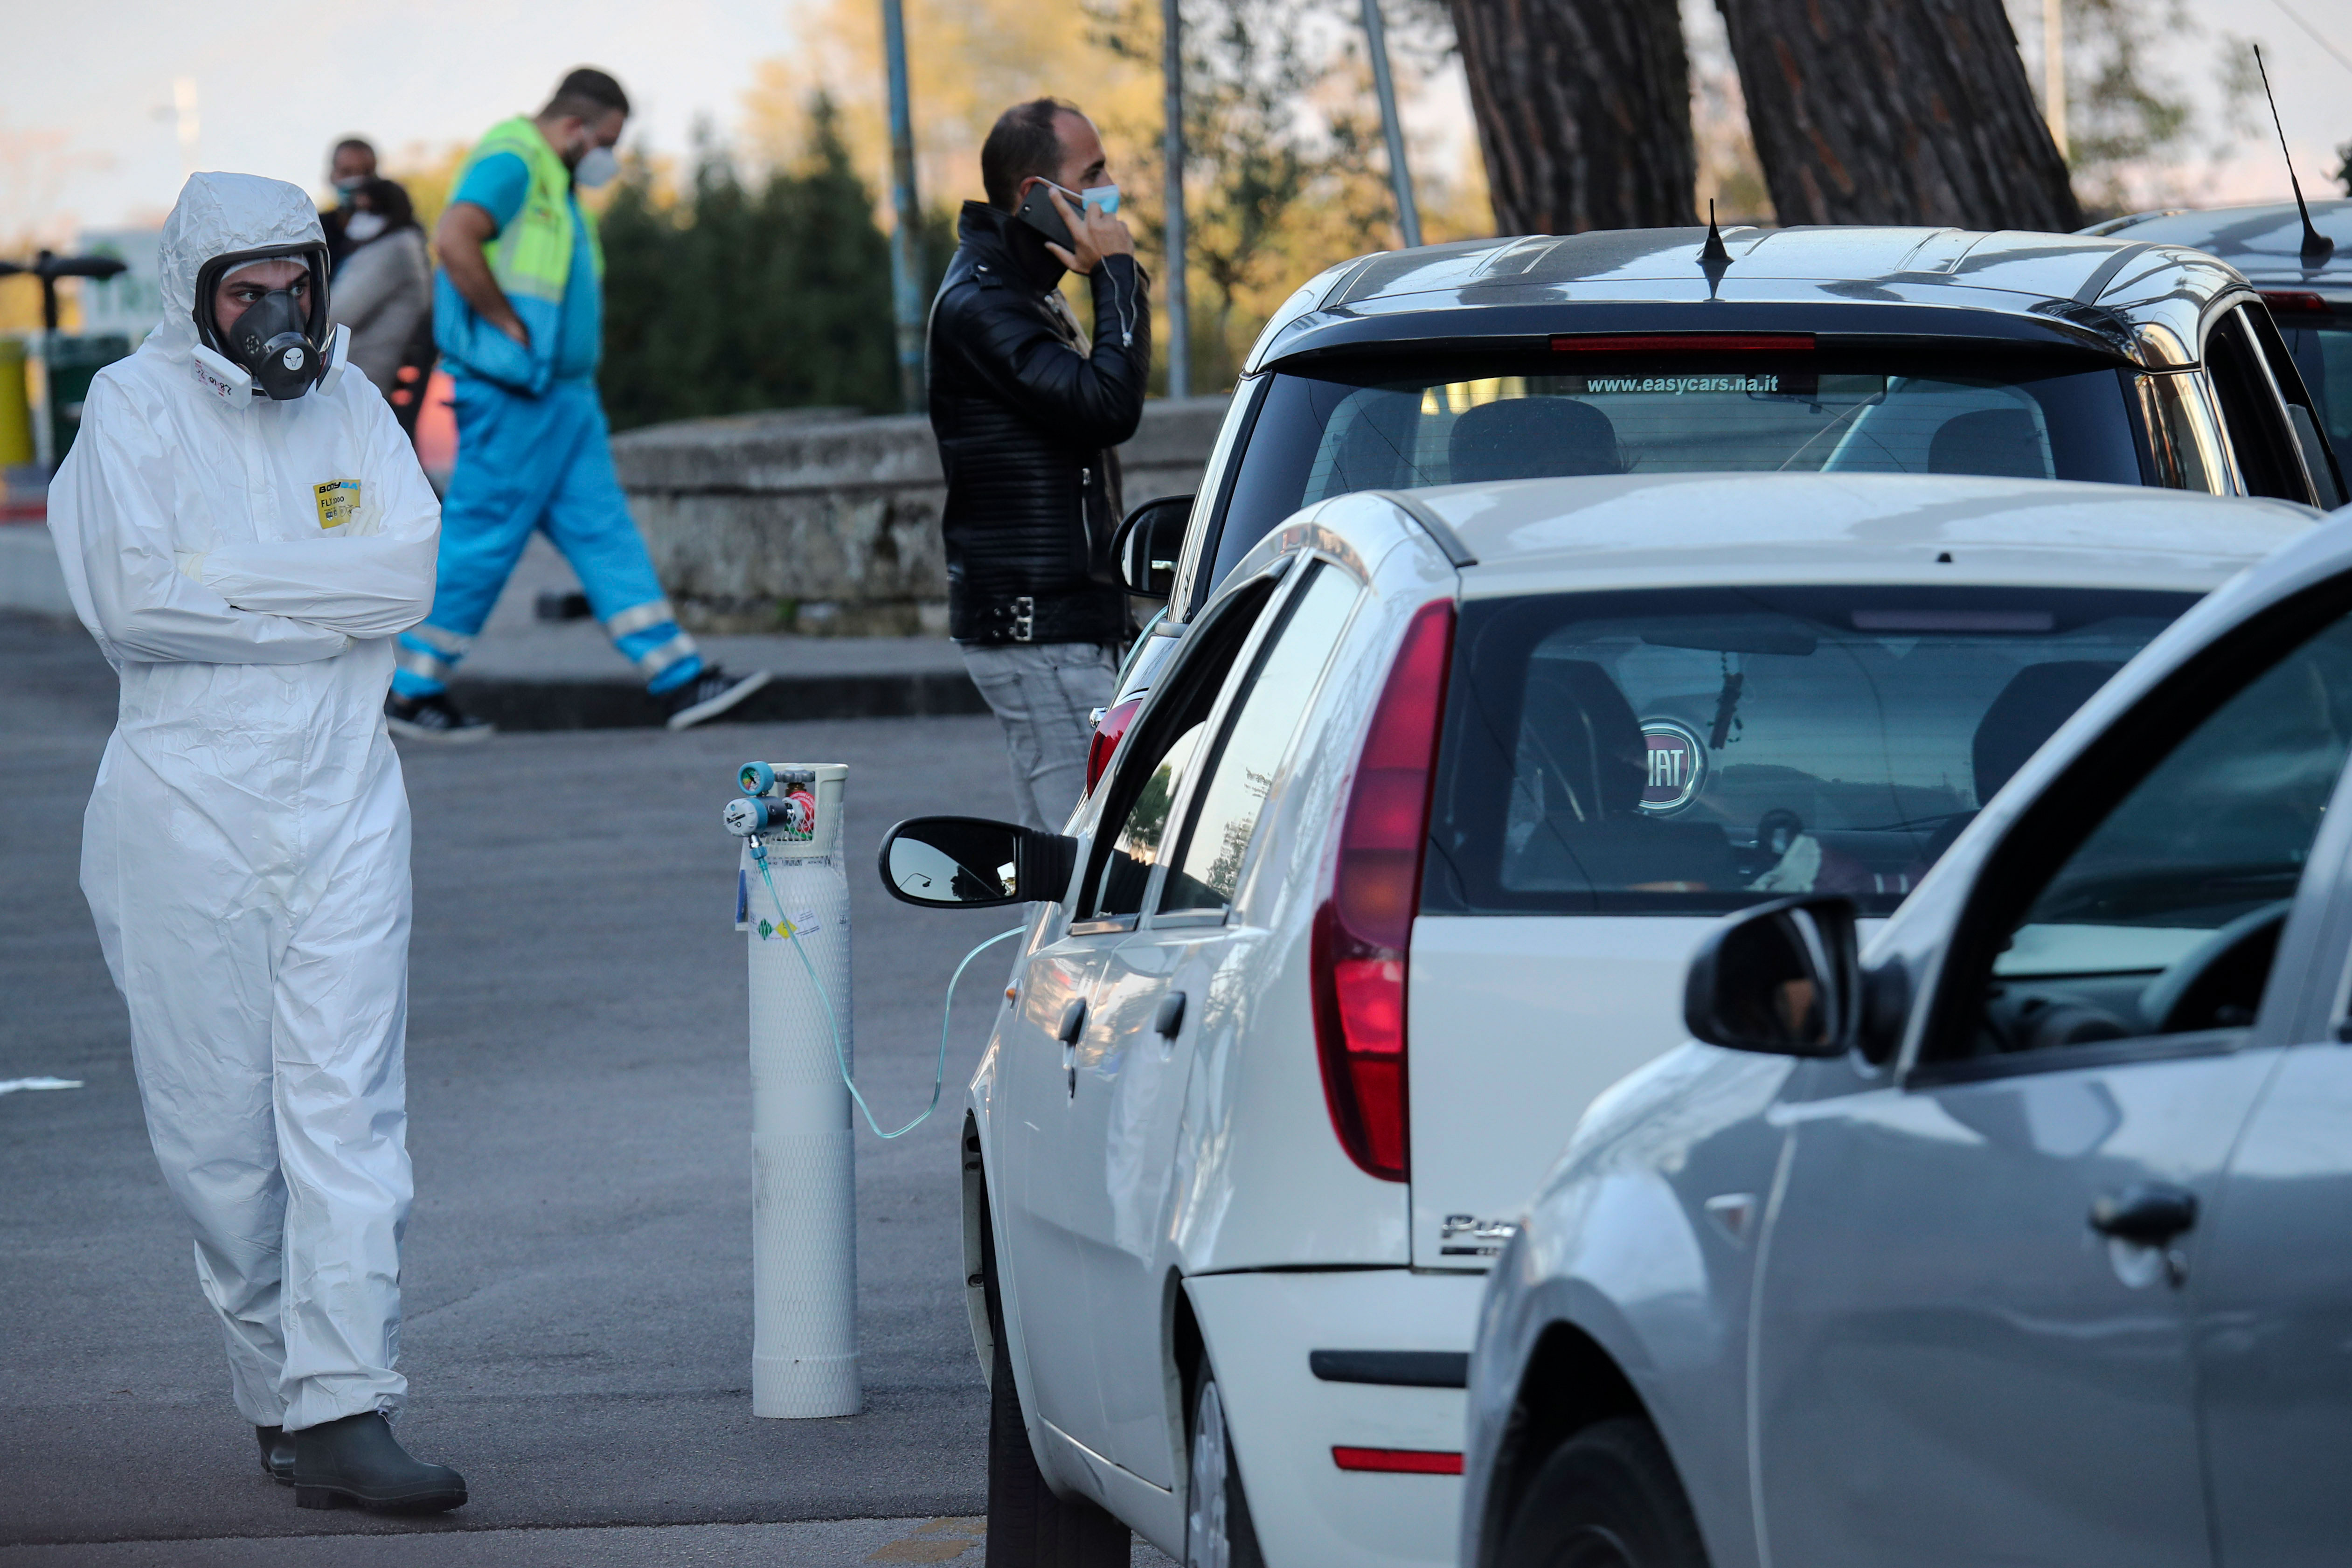 People with suspected cases of Covid-19 are treated in their cars at Cotugno hospital in Naples, Italy, on November 7.